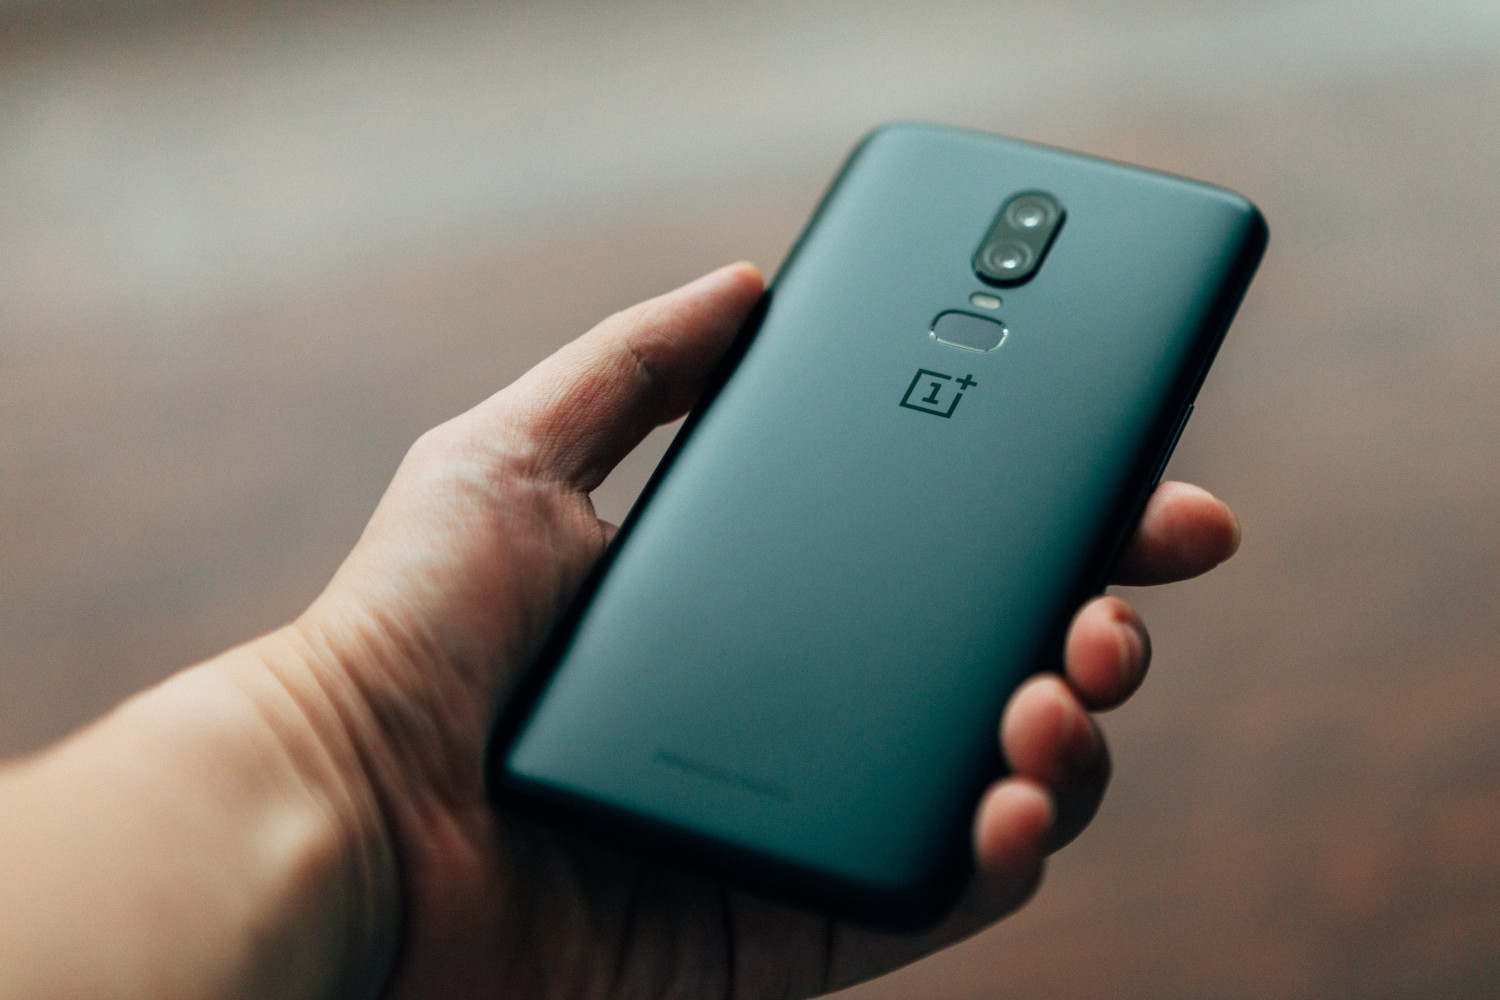 OnePlus To Launch 5G Phone With Sprint Soon | Tech Times